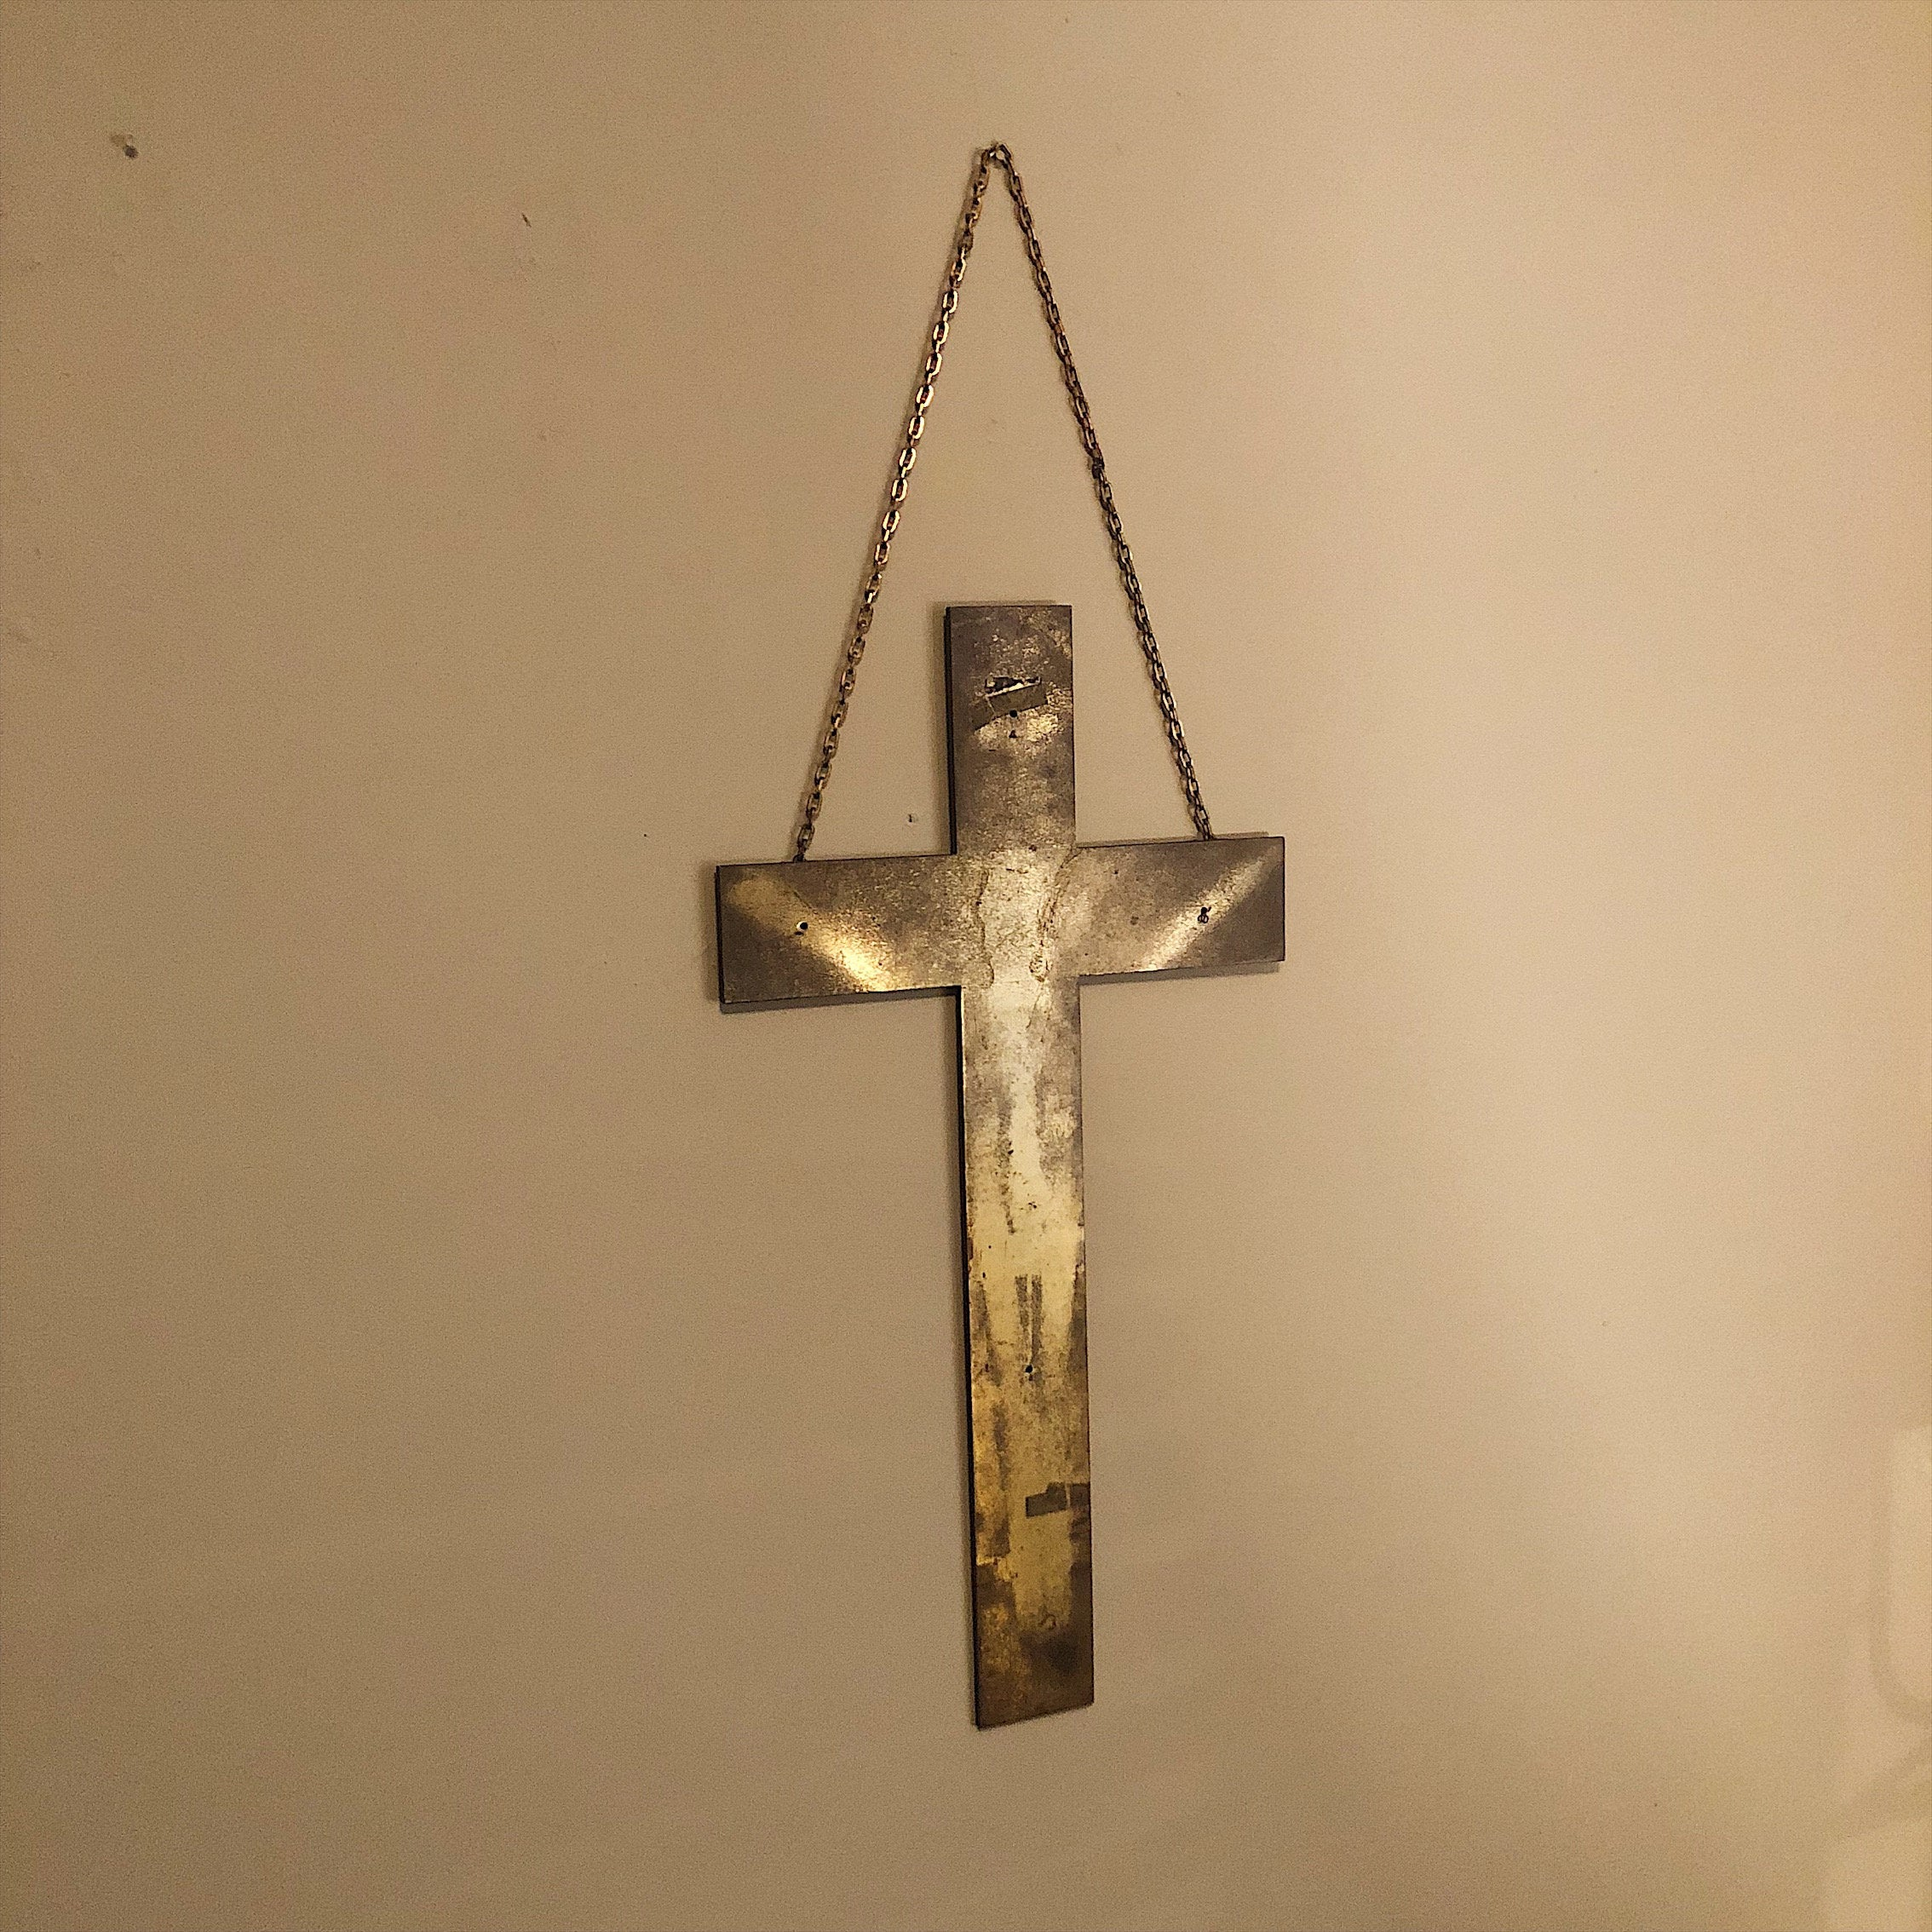 "Huge Brass Crucifix Cross with Christ Impression - 26"" x 16"" - Religious Relic -1940s? - Wall Decor - Chain Link Wall Hanging - Rare"